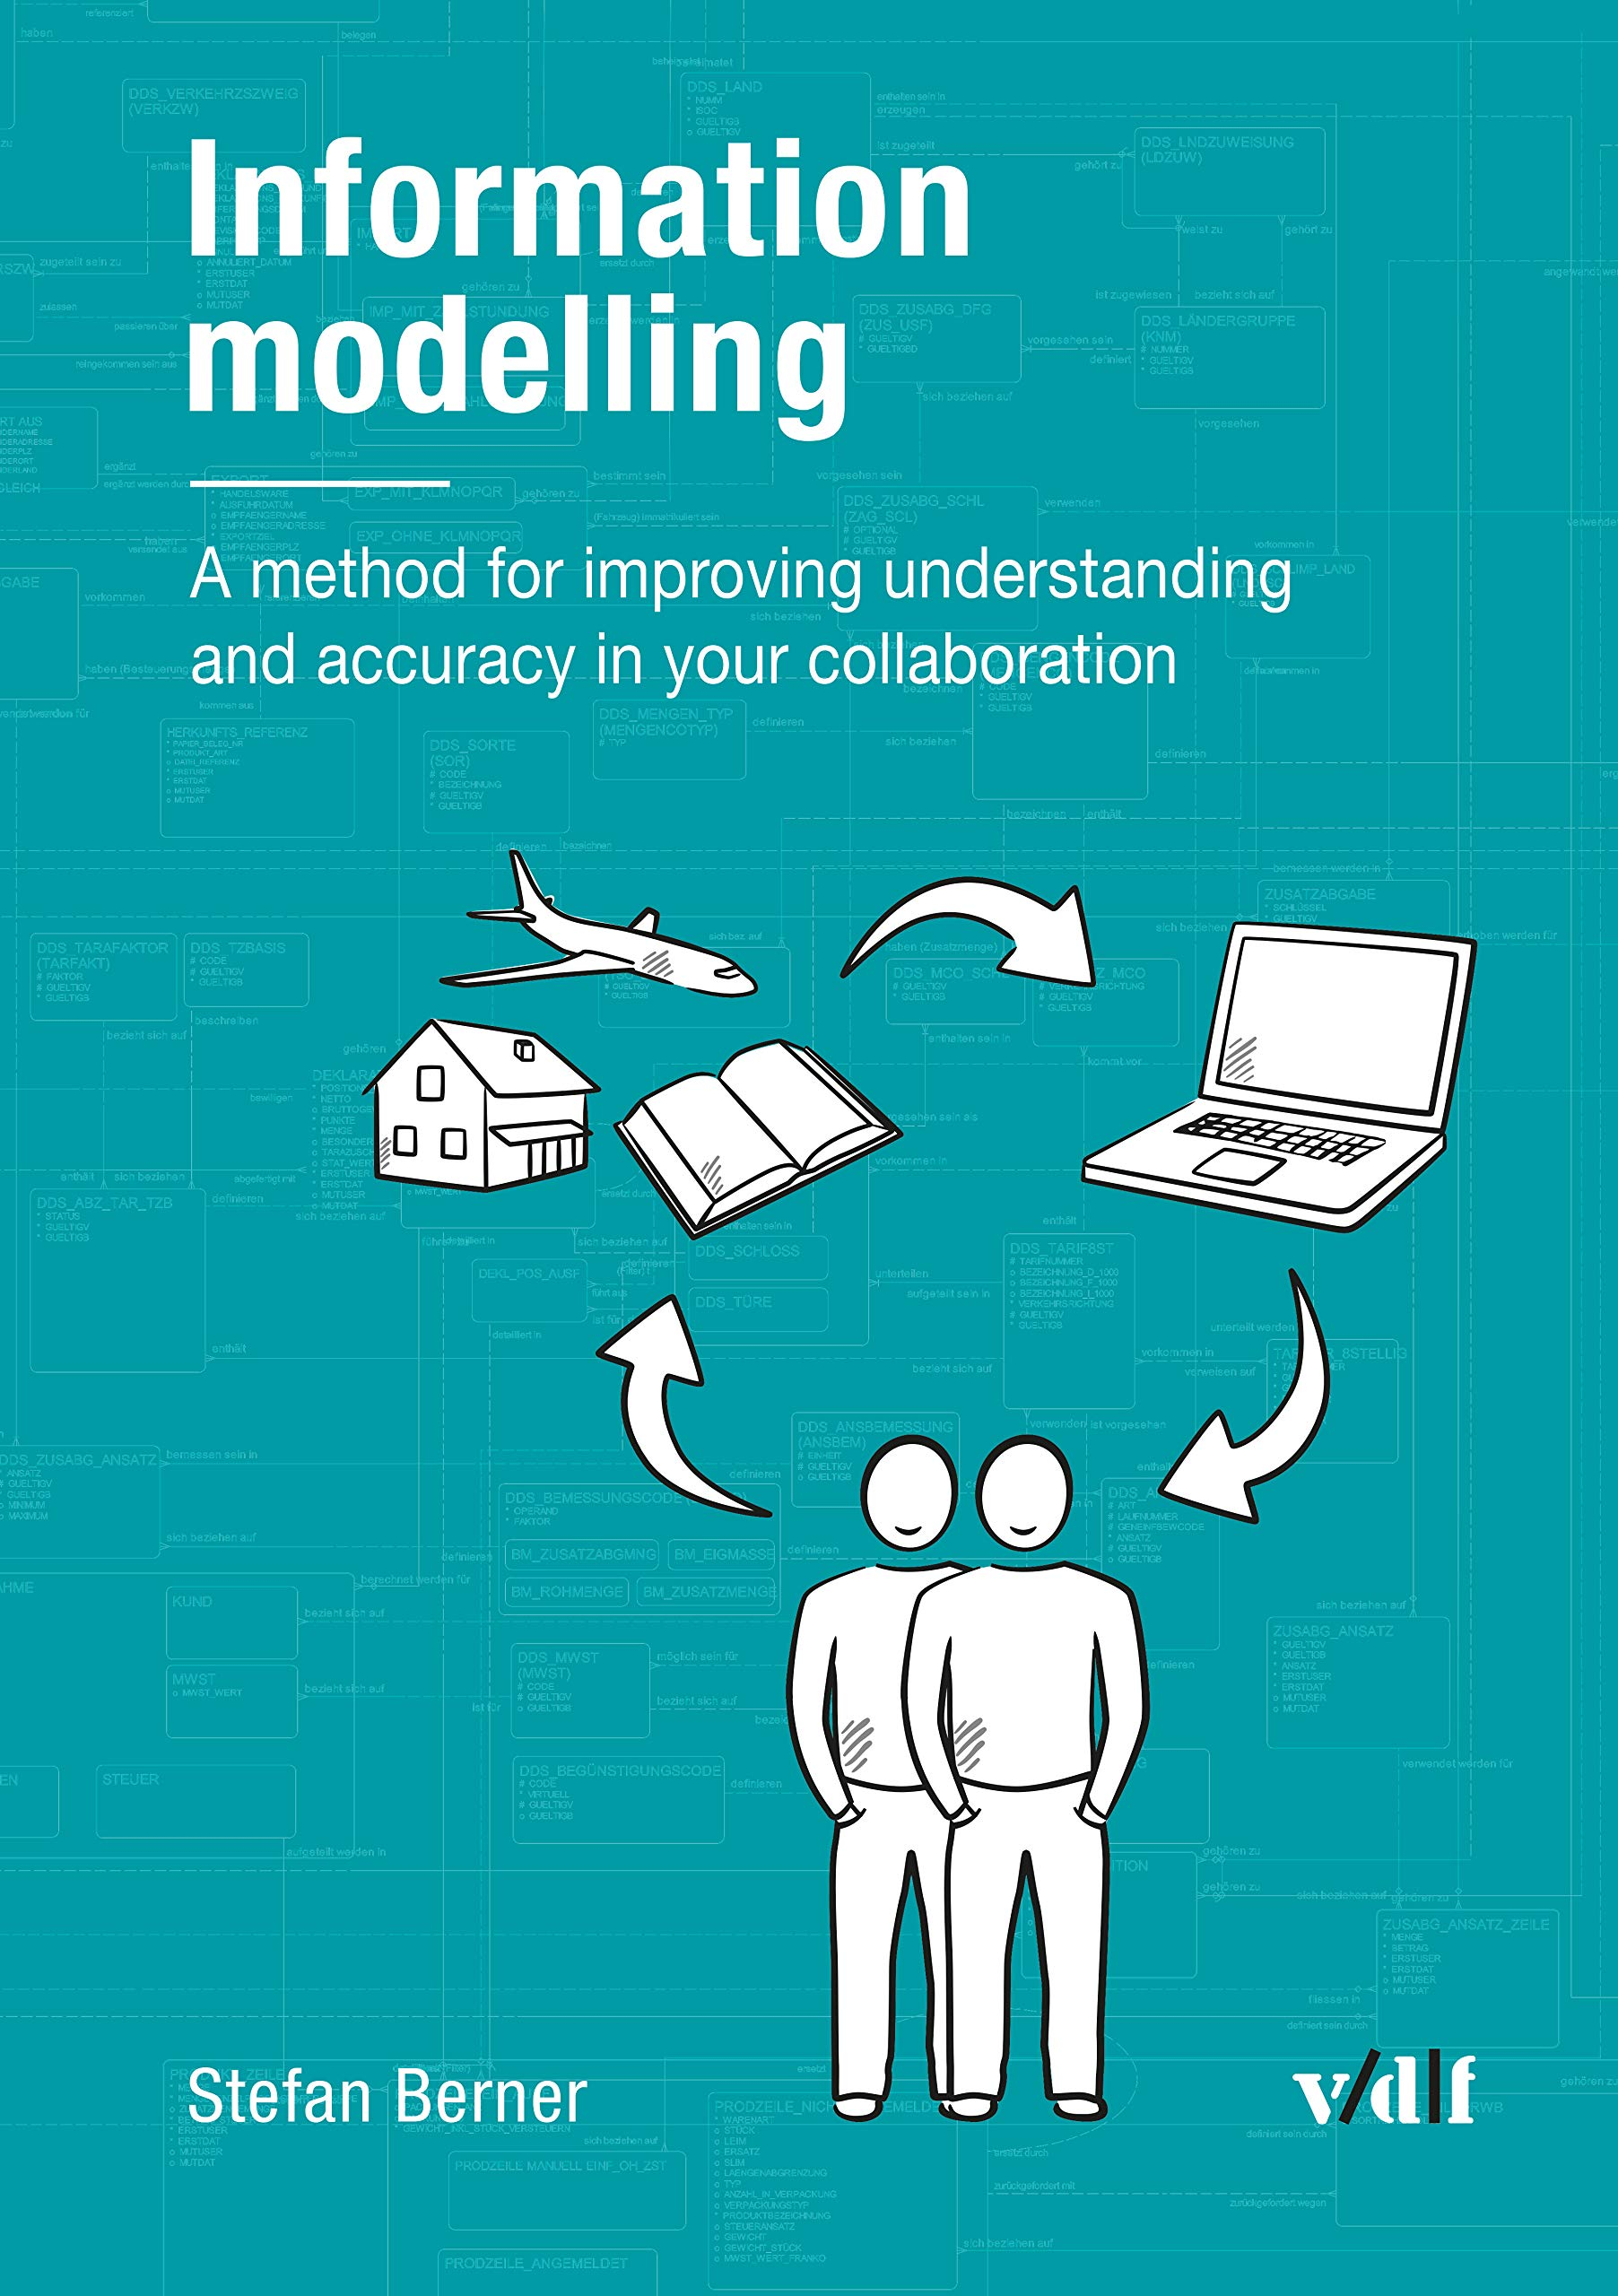 Image OfInformation Modelling: A Method For Improving Understanding And Accuracy In Your Collaboration (English Edition)